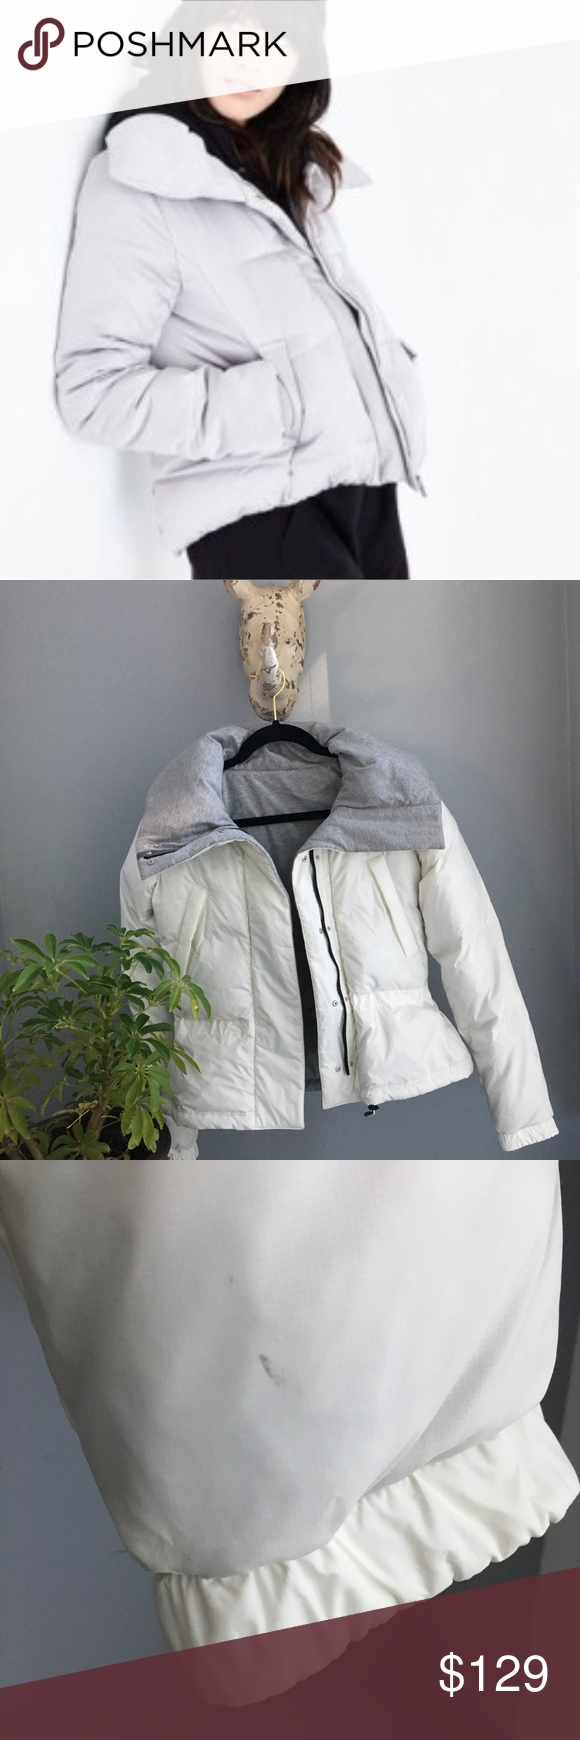 Reebok Puffer Jacket White Grey Reversible Jacket Gorgeous Reversible Grey White Jacket By Reebok Excellent Pr Clothes Design Reversible Jackets Cropped Style [ 1740 x 580 Pixel ]